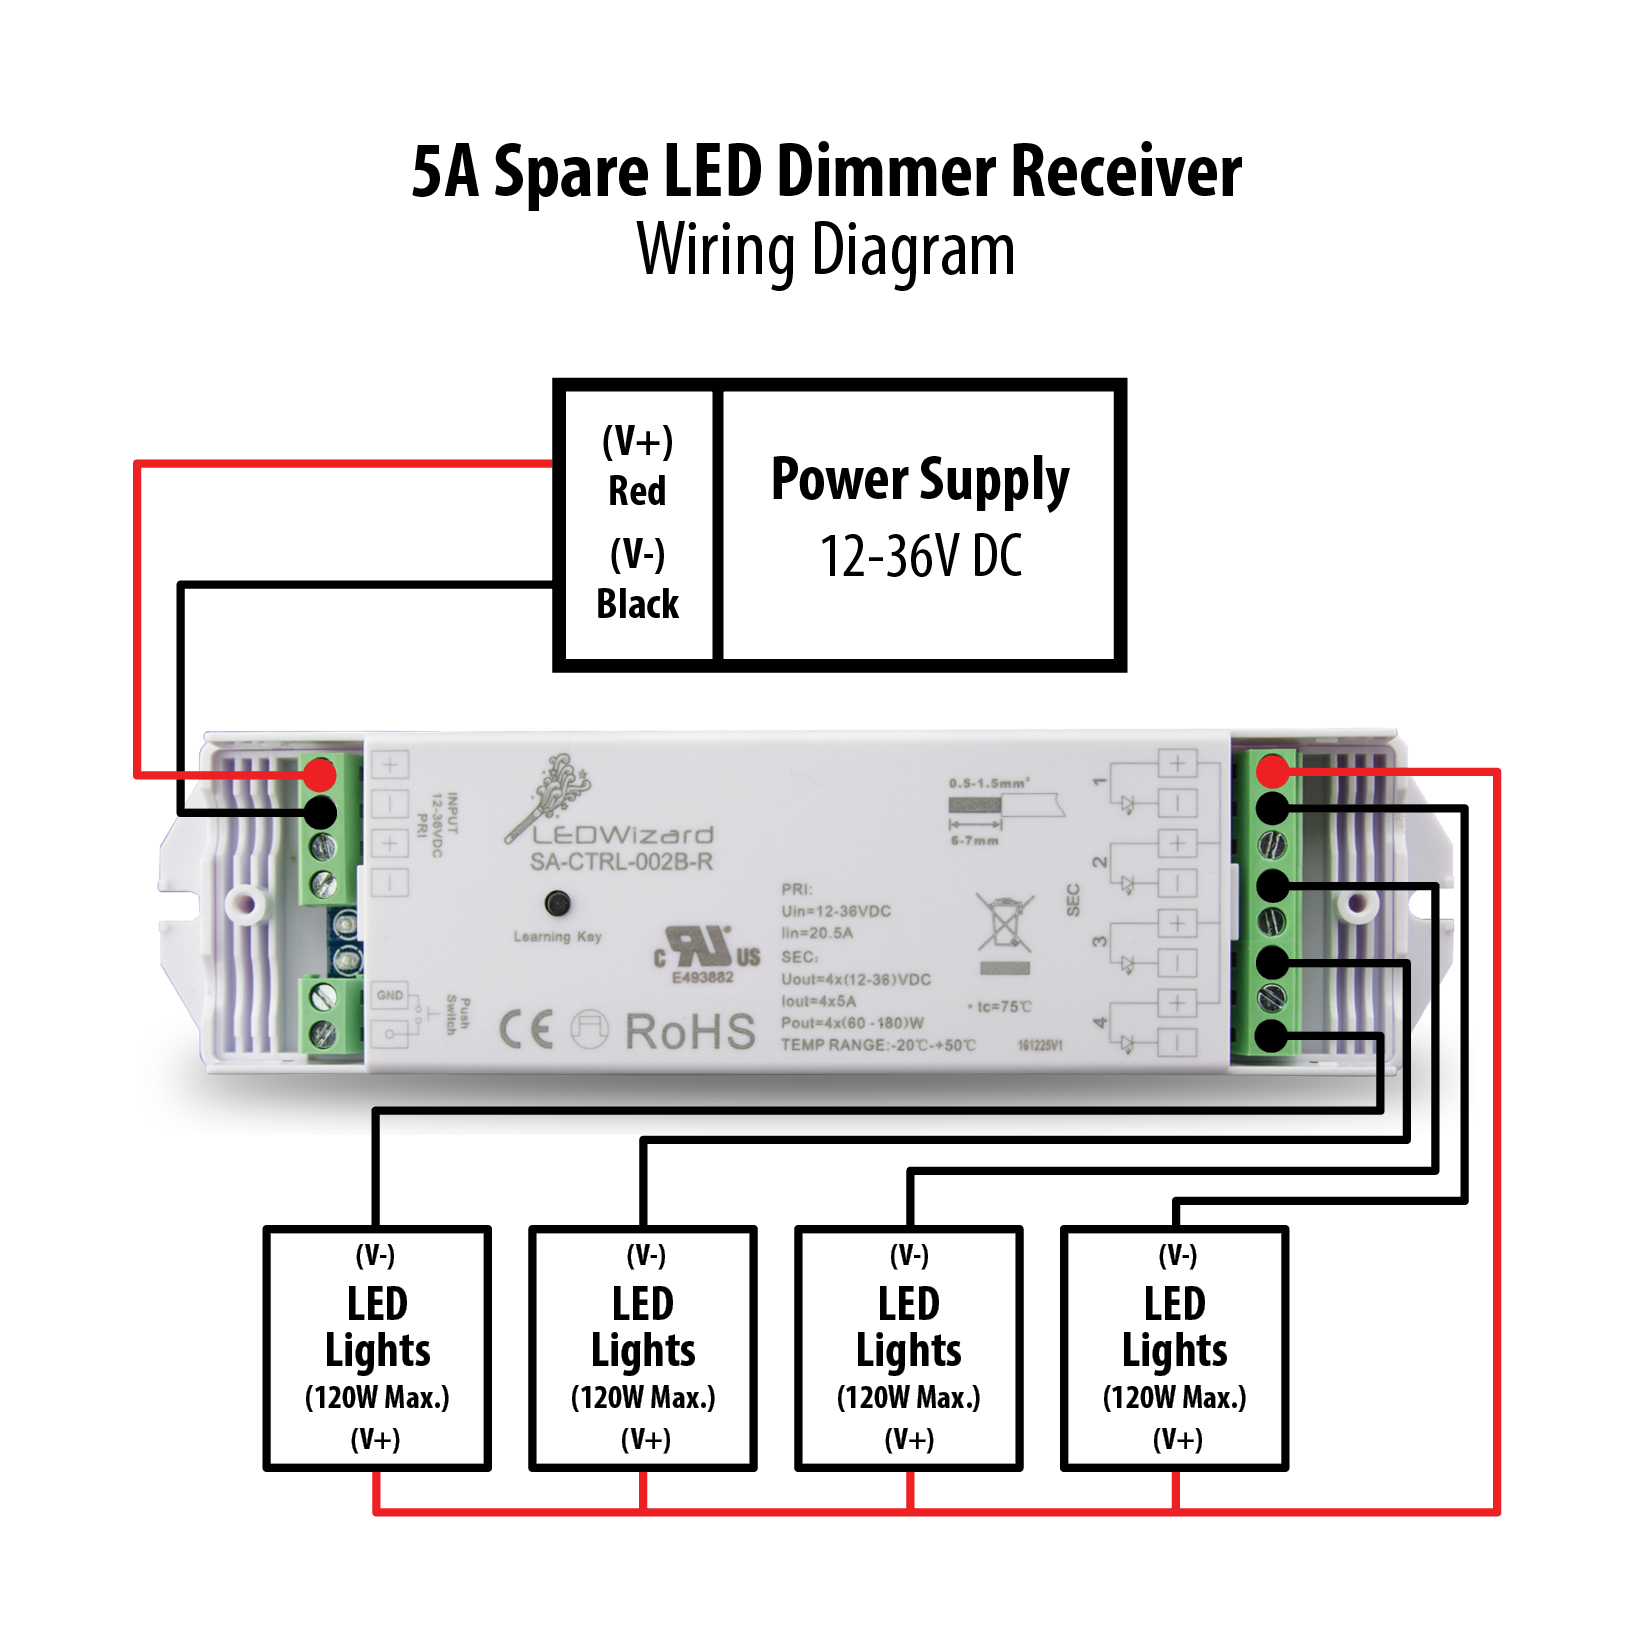 Spare Led Dimmer Receiver Wiring Diagram Customers Questions And Answers